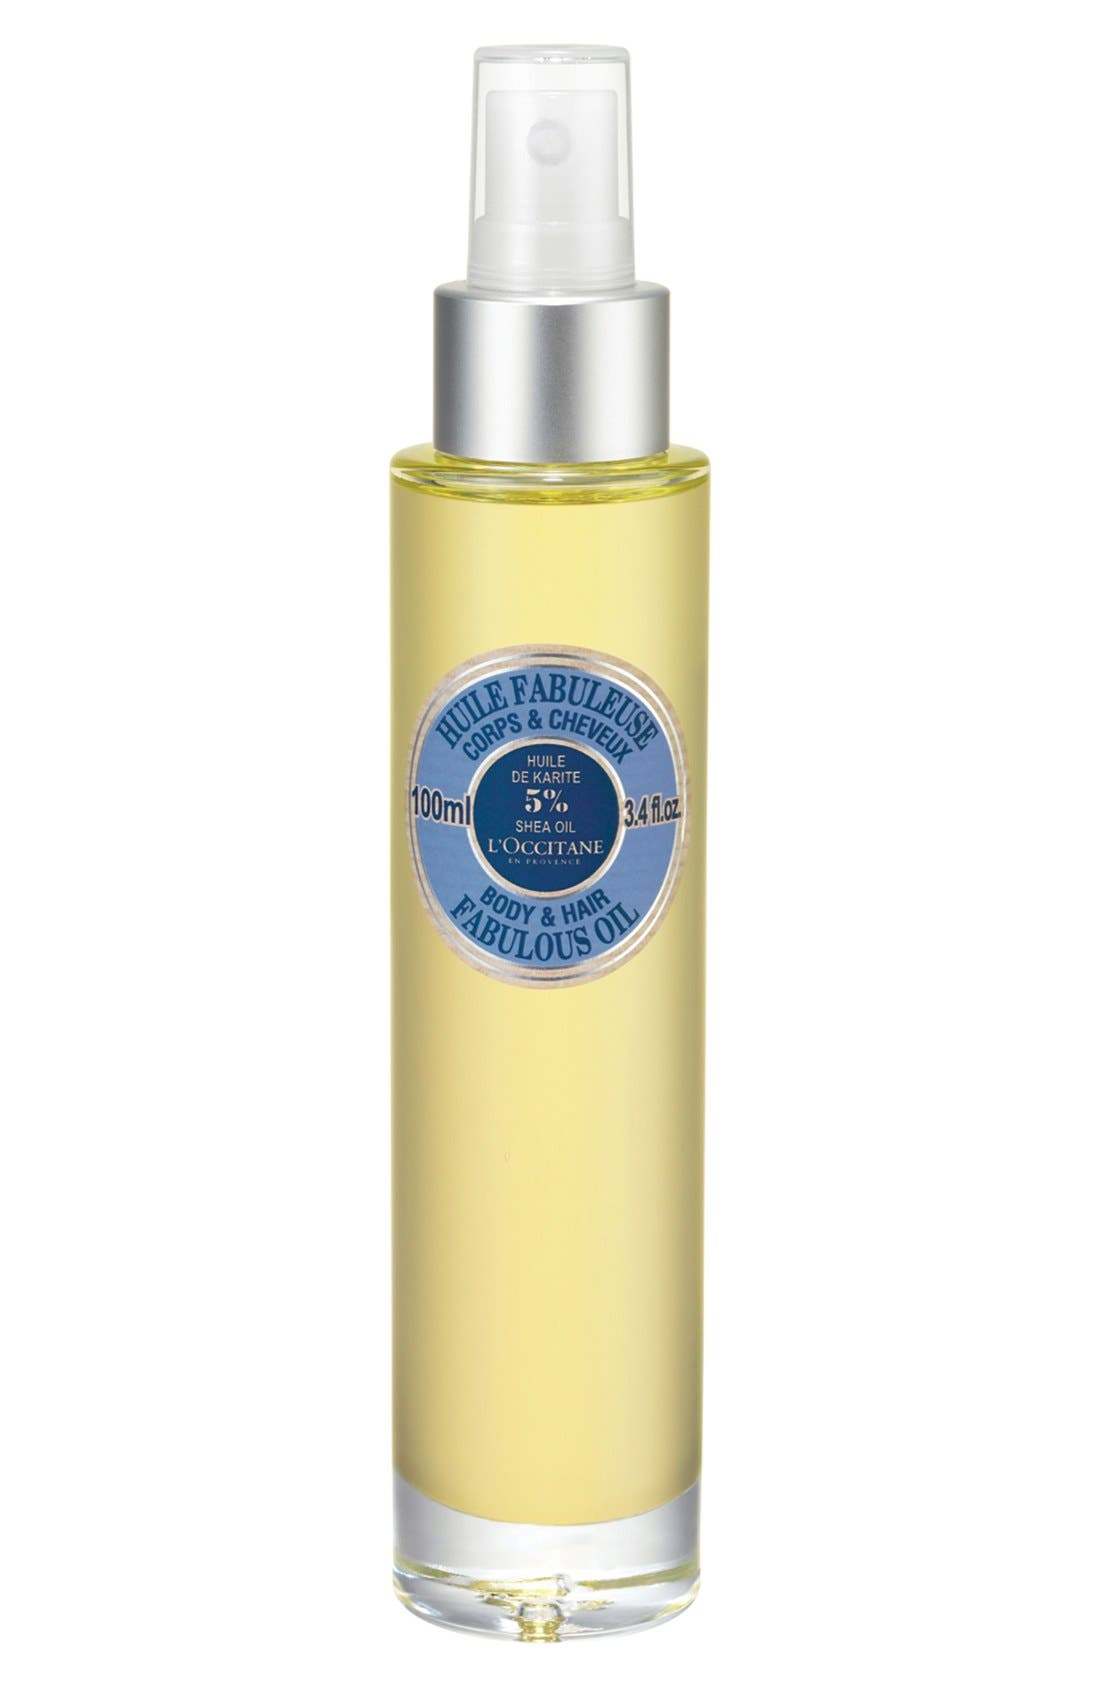 L'Occitane 'Shea Fabulous' Dry Oil